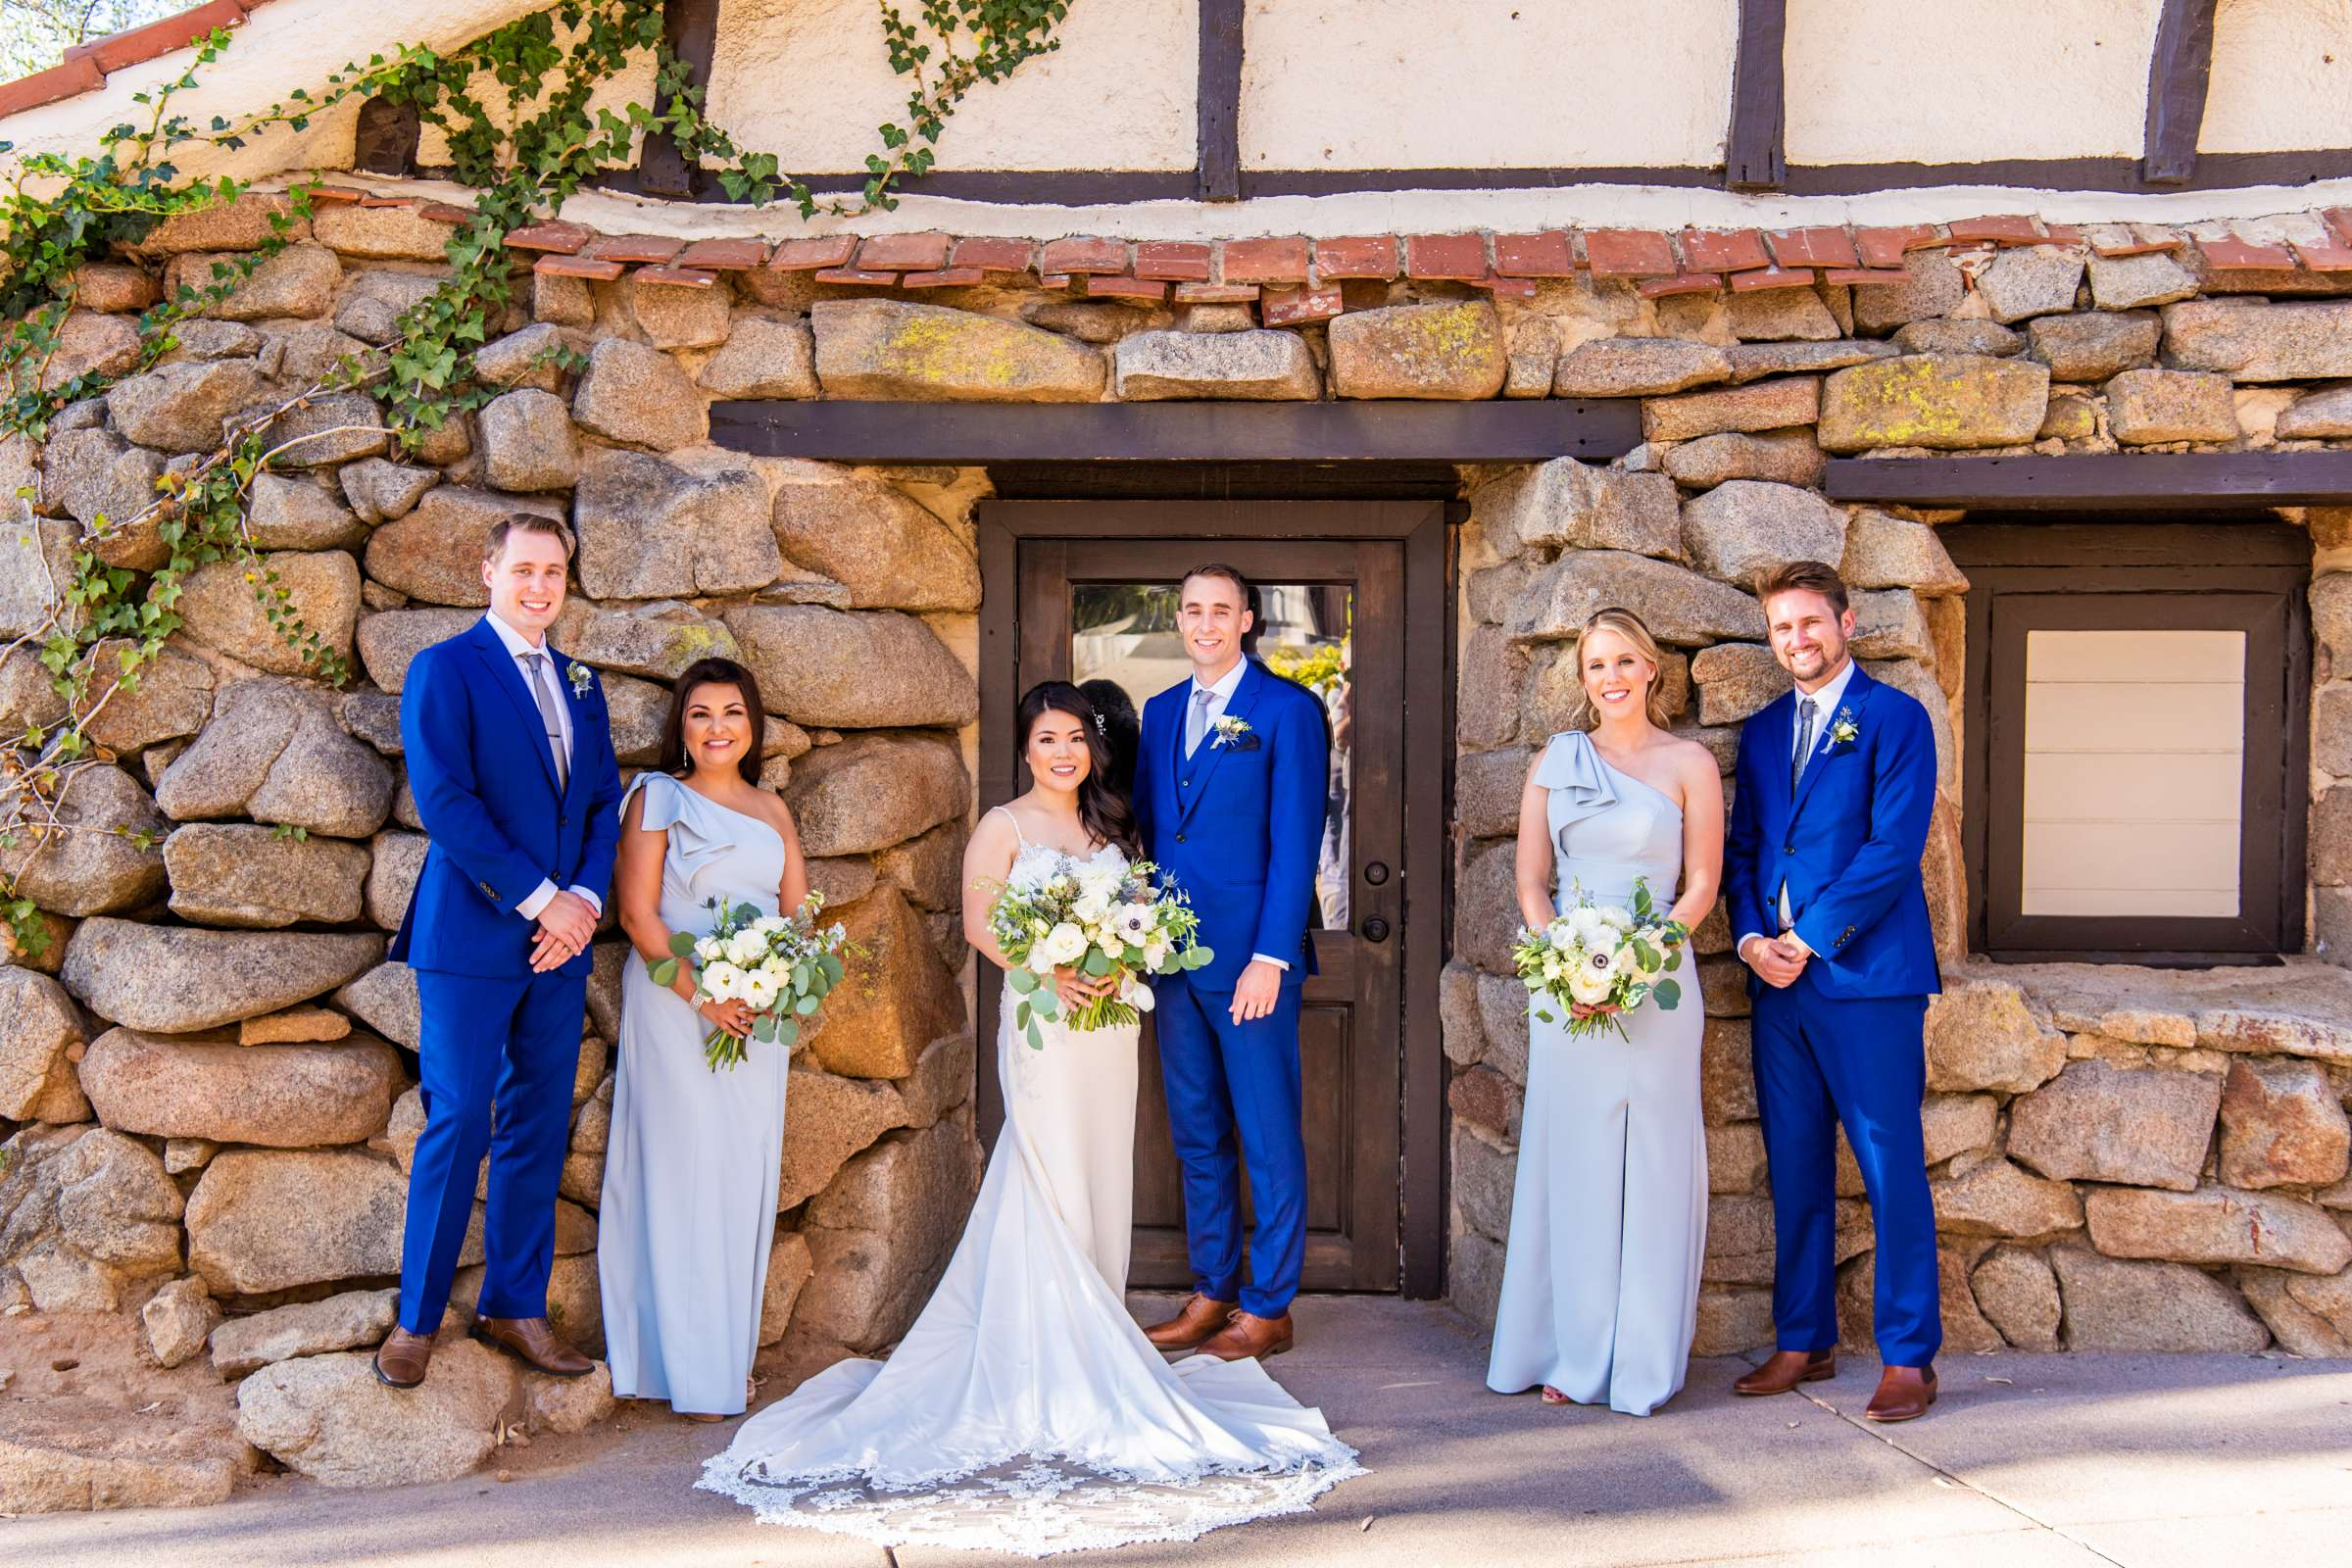 Mt Woodson Castle Wedding coordinated by I Do Weddings, Aya and Jared Wedding Photo #486971 by True Photography